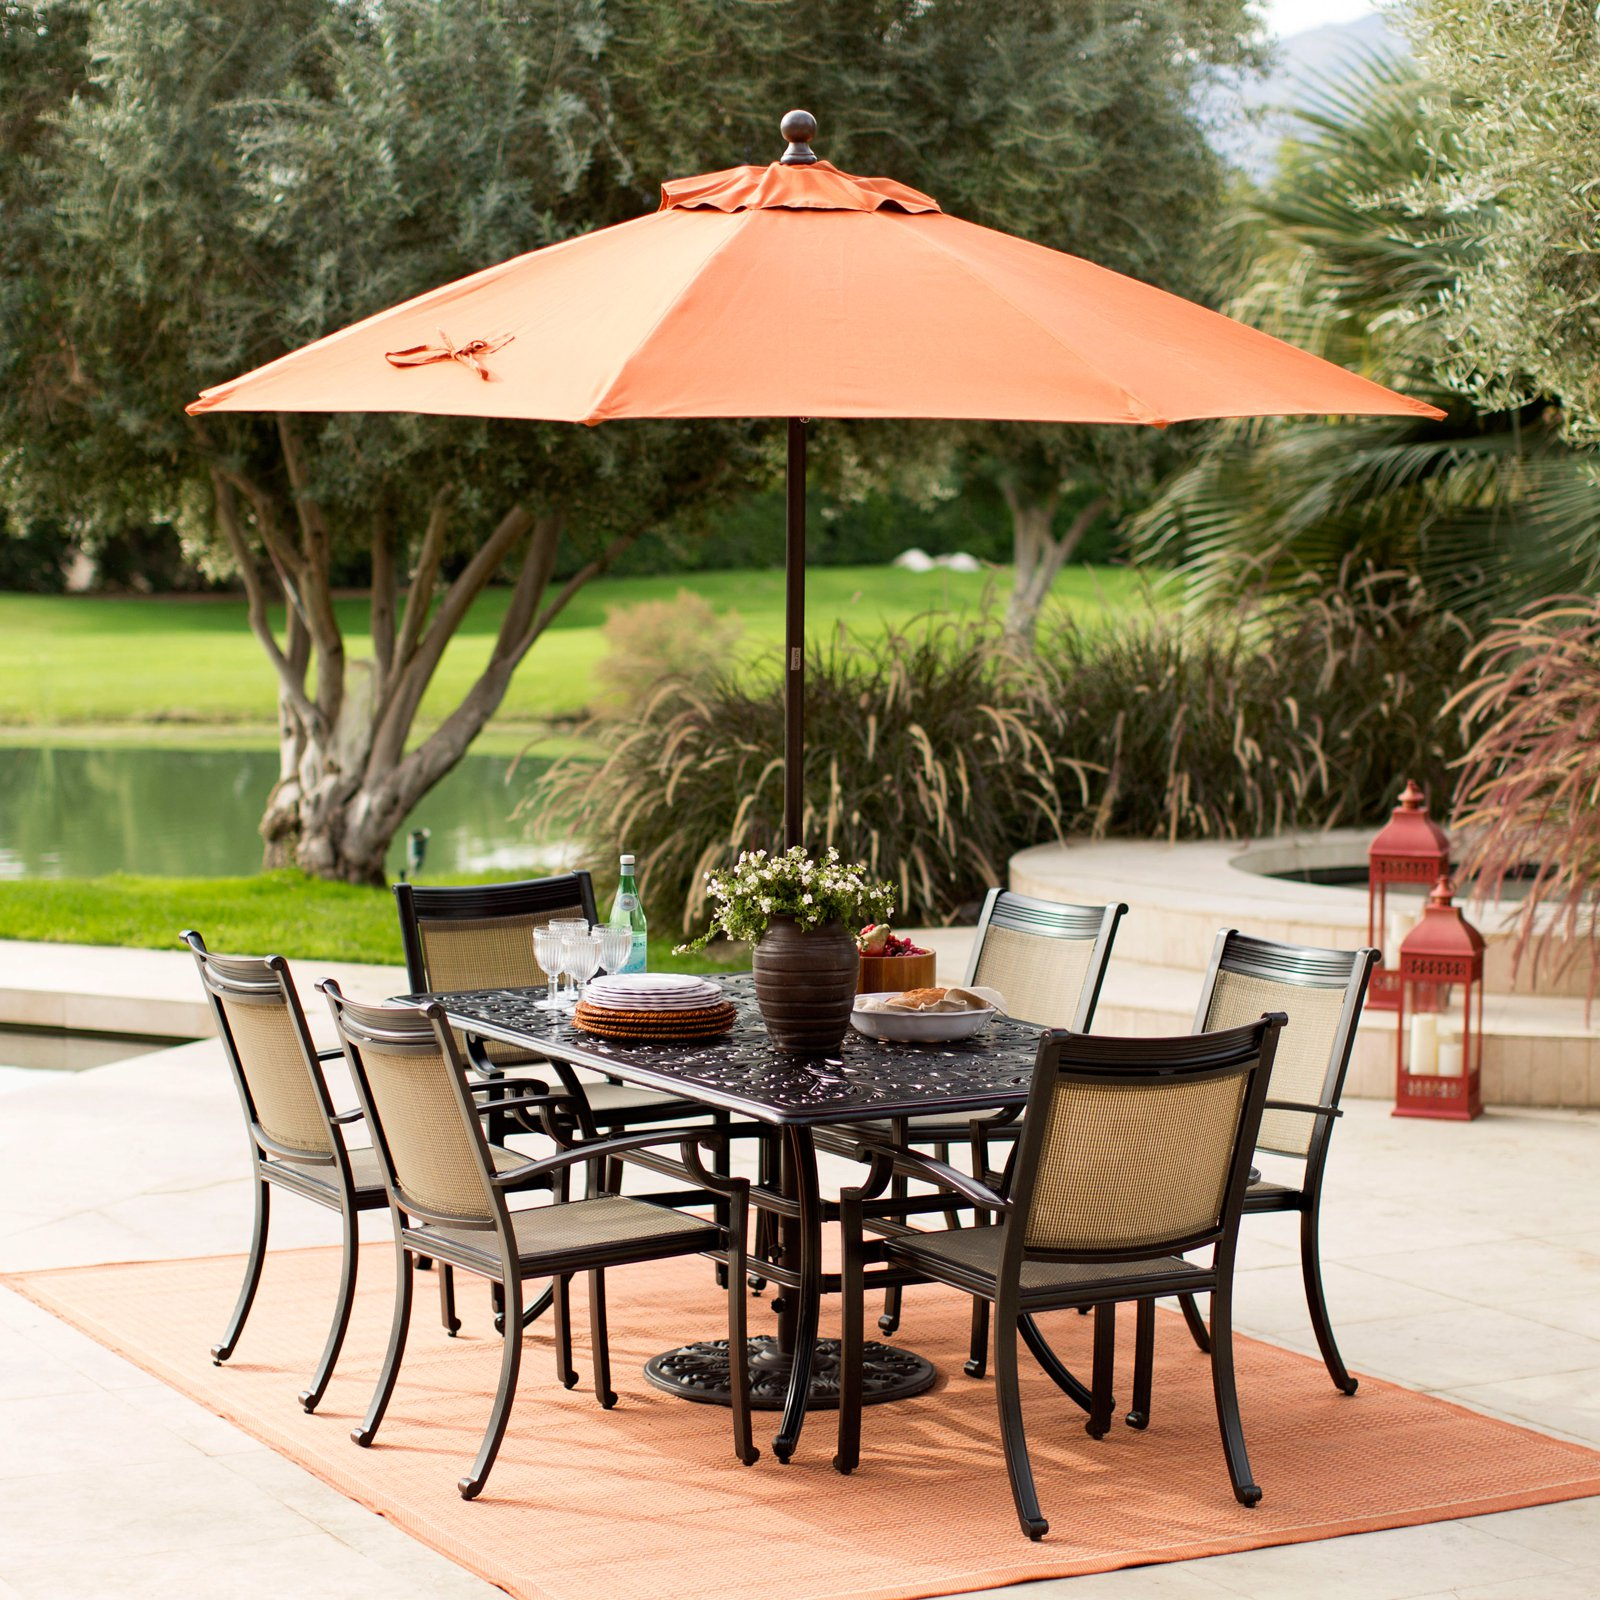 Sunbrella Commercial Grade Aluminum Wind Resistant Patio Umbrella